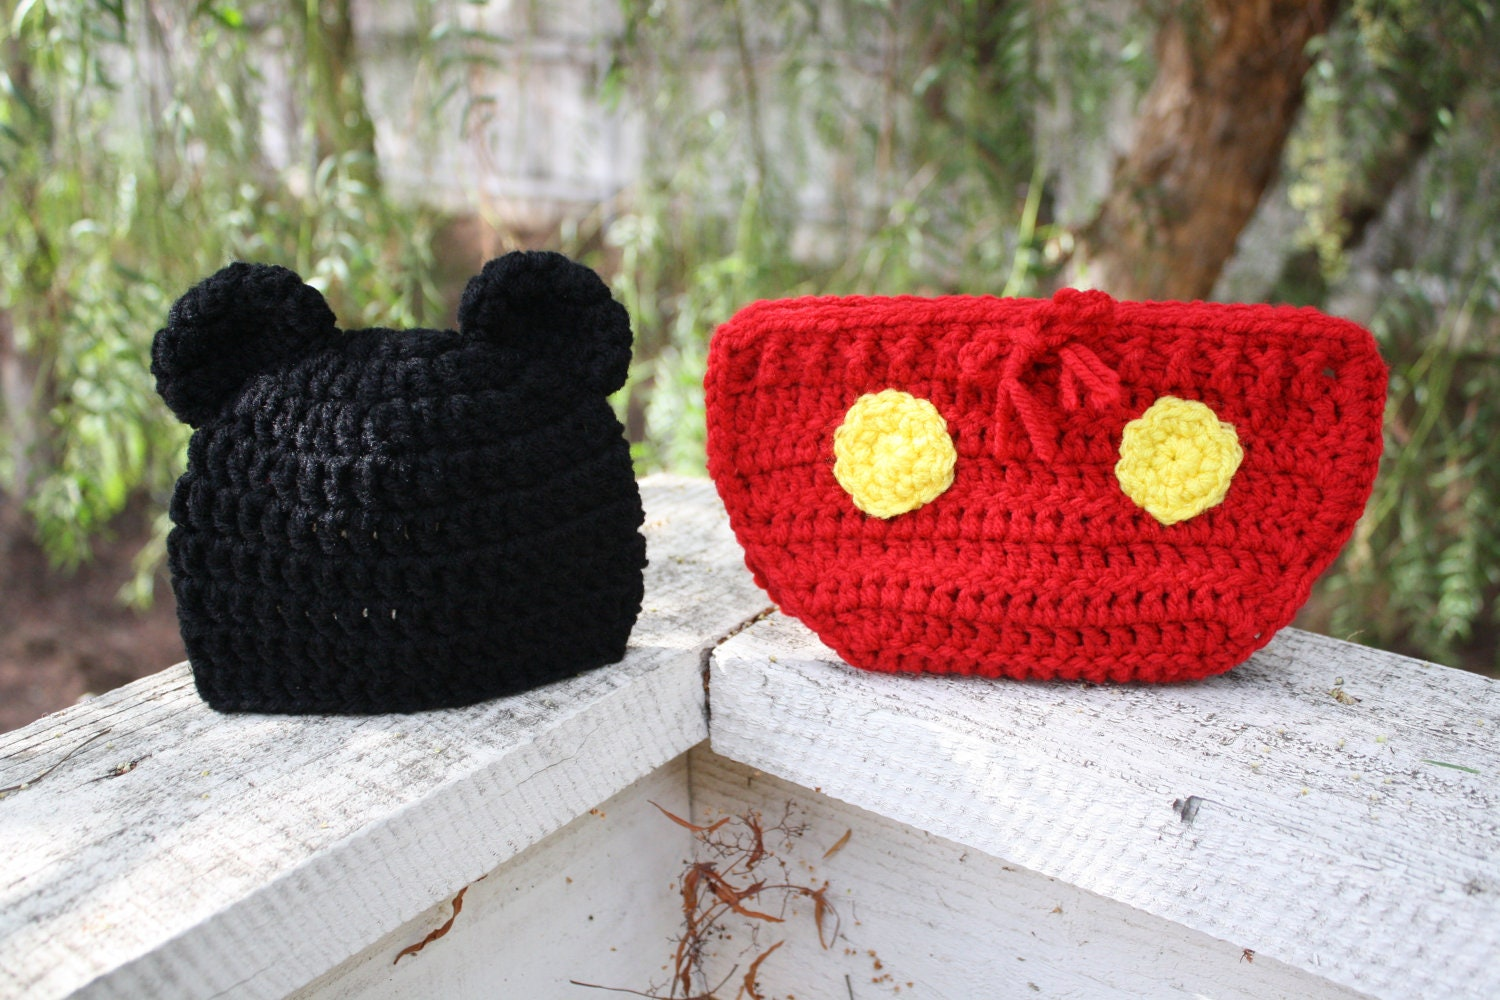 The Crochet Mickey Mouse Beanie and Diaper Cover Set